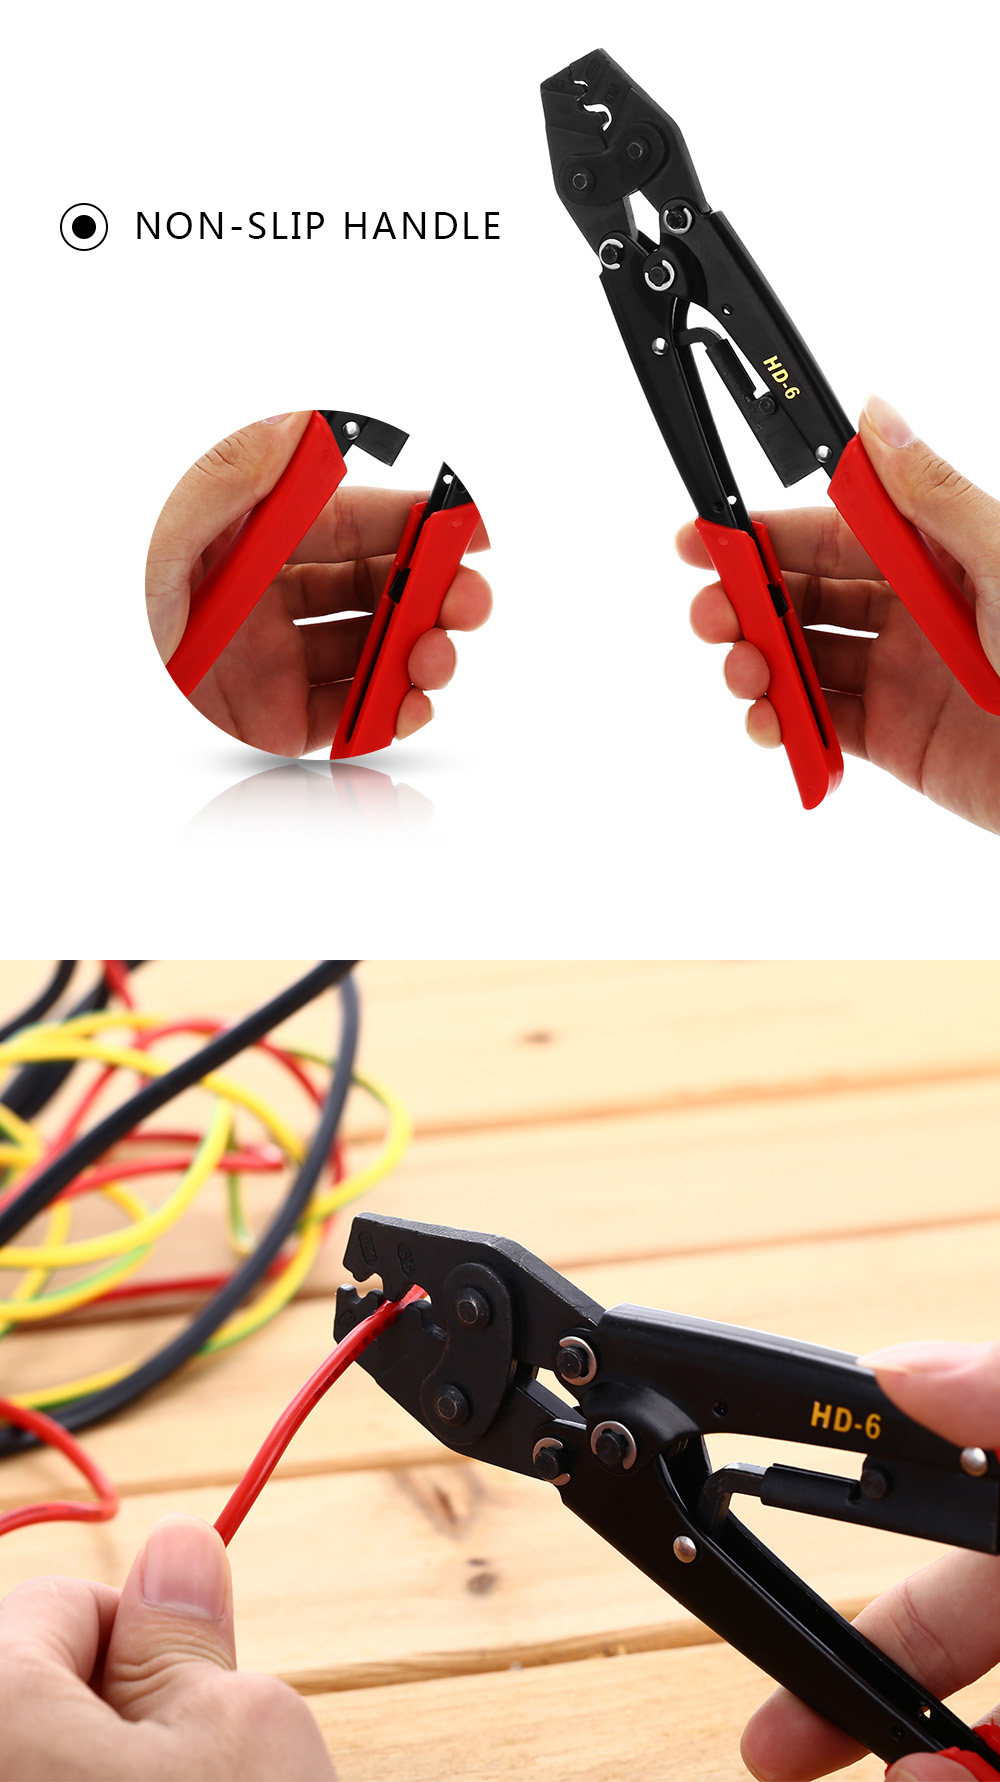 ELECALL HD - 6 Ratchet Terminal Crimping Pliers for Cable End Sleeves